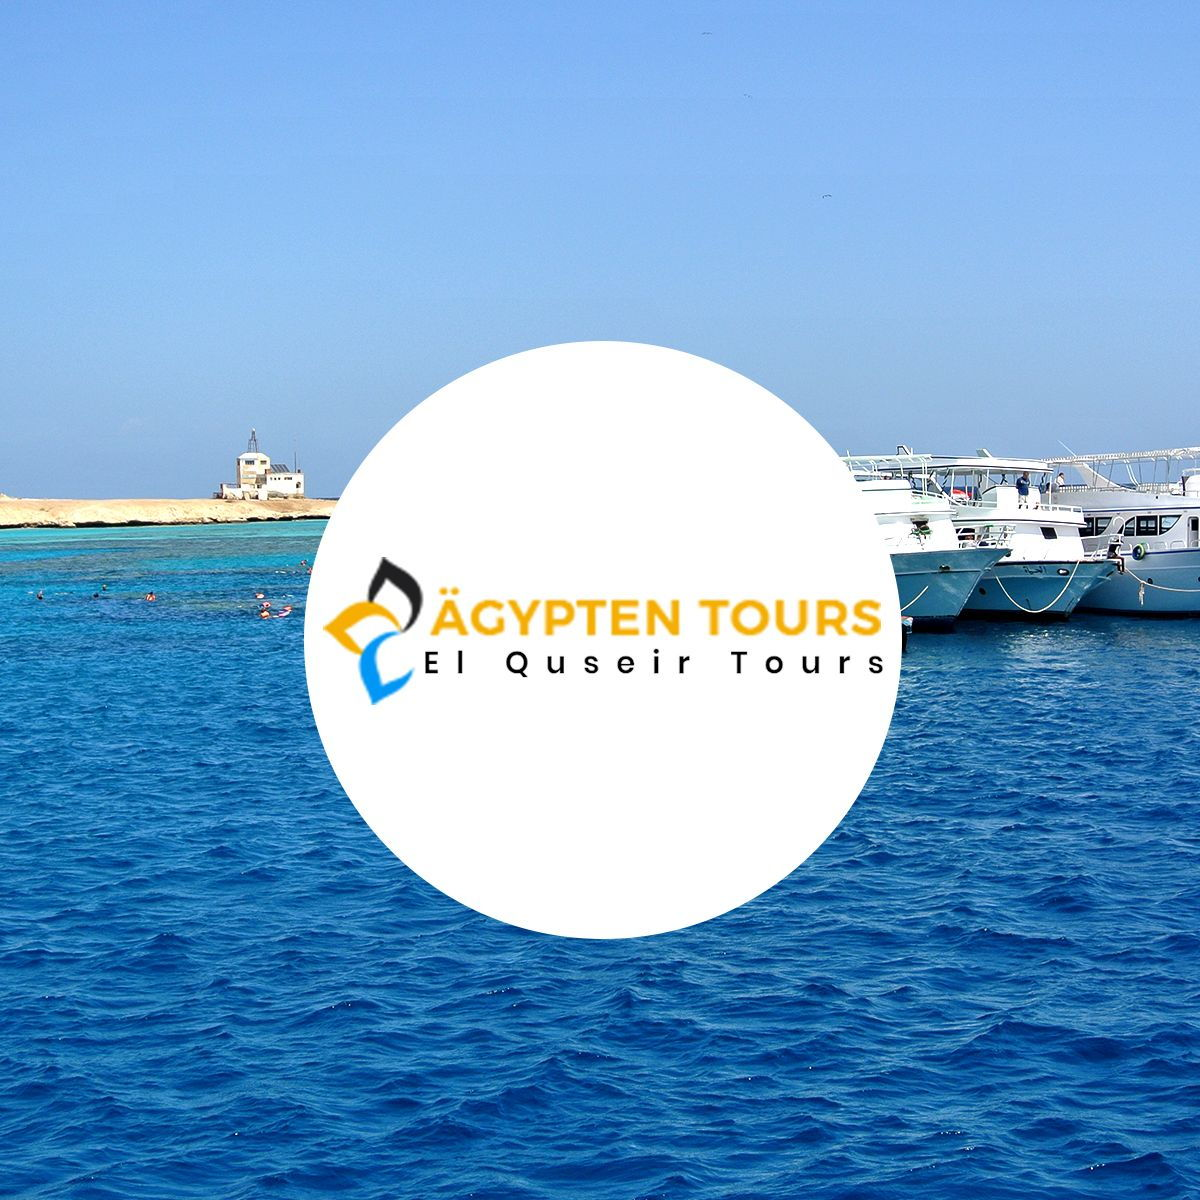 About El Quseir Tours